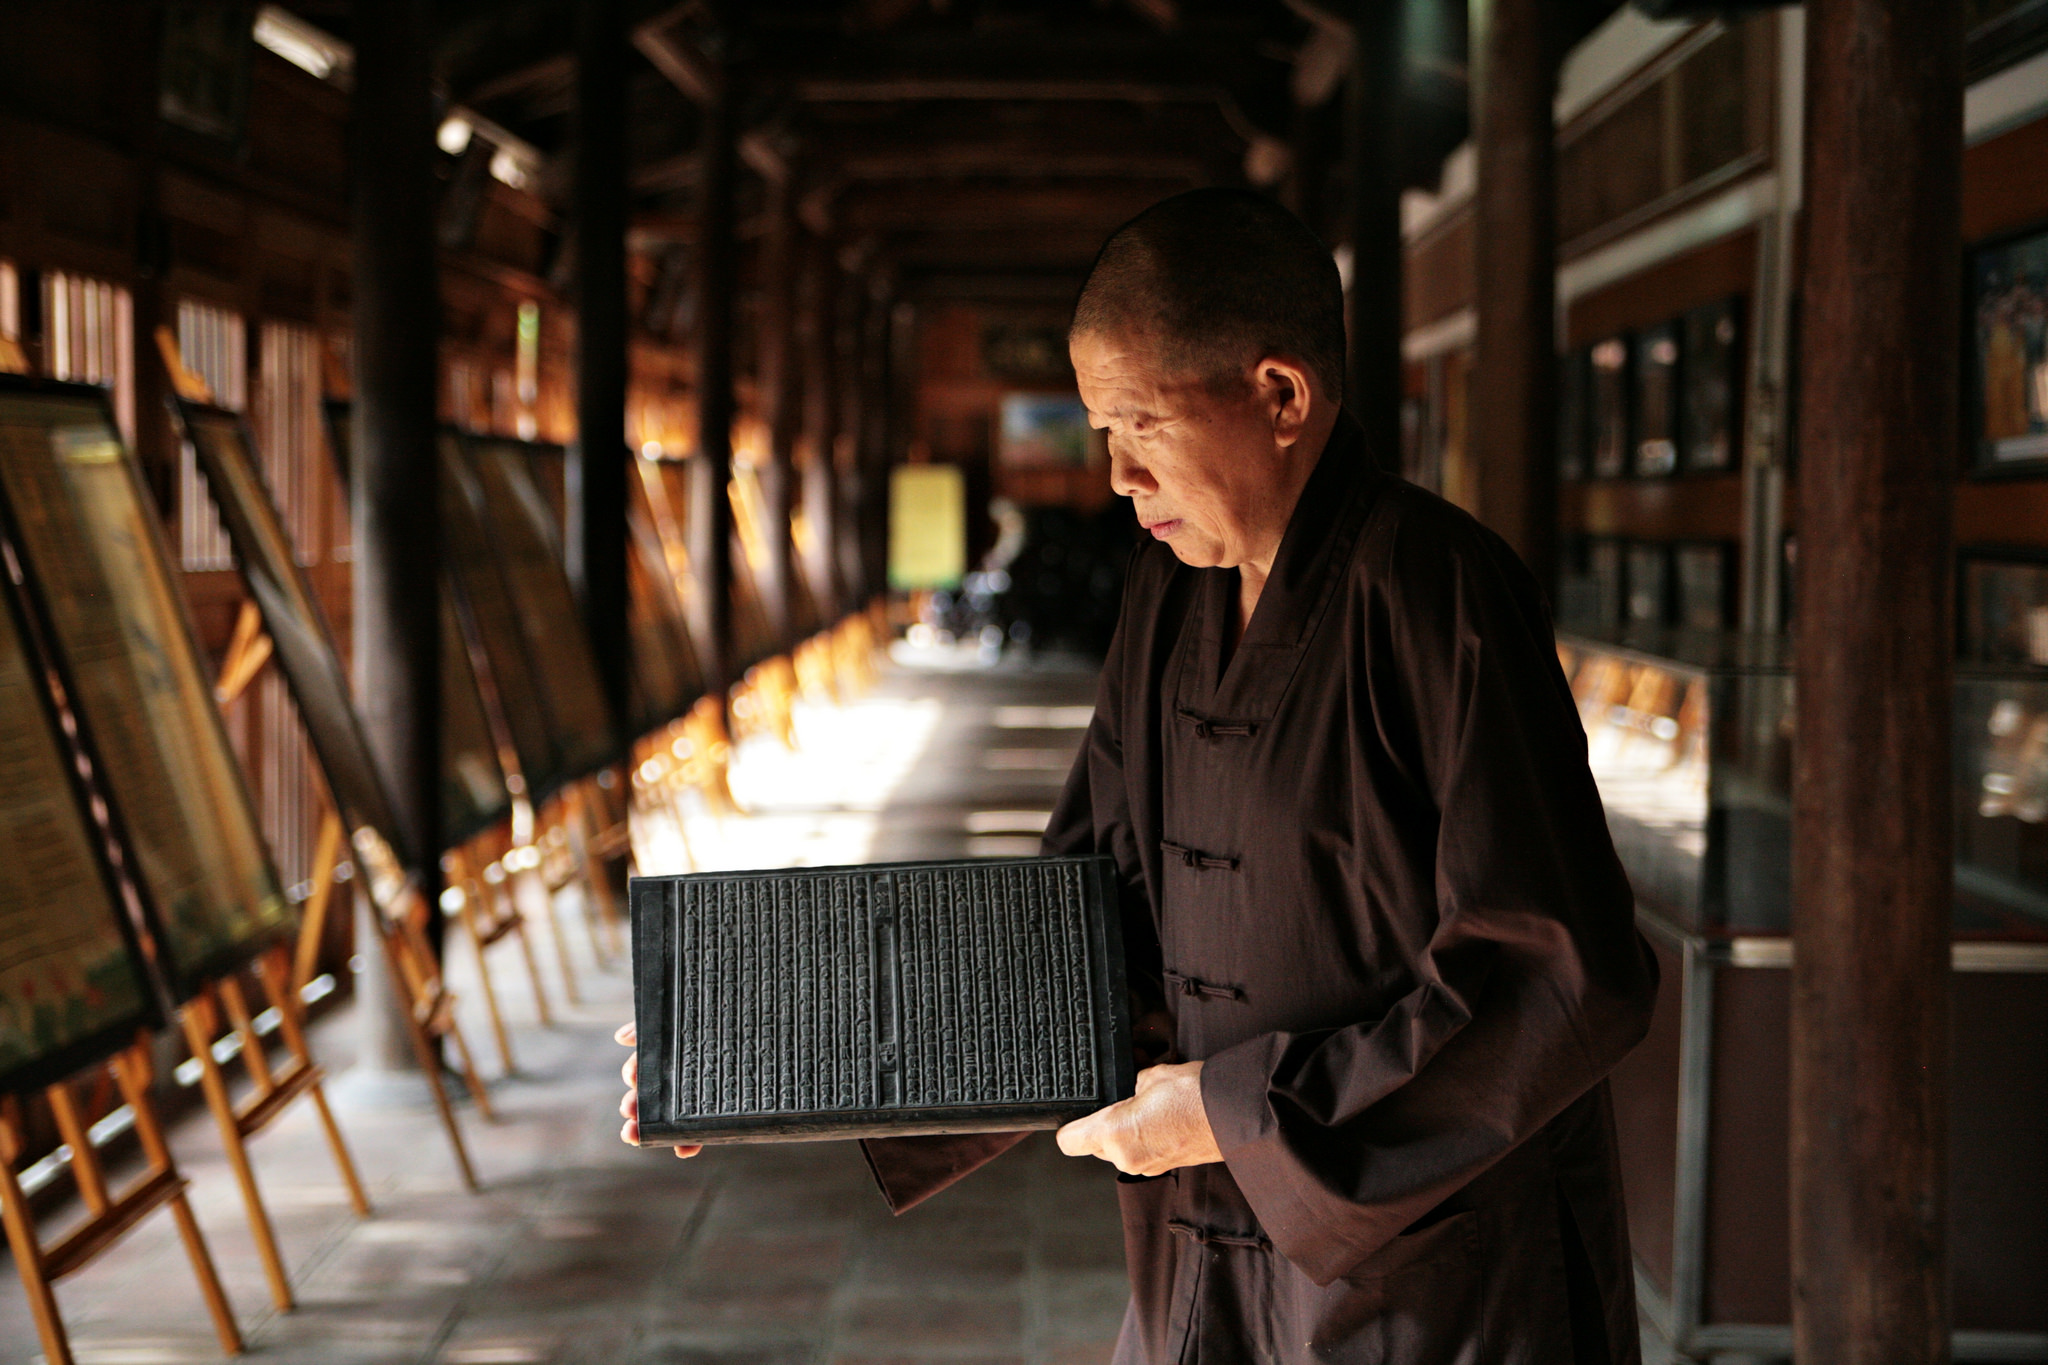 Monk with scriptures at Duc La Pagoda, Vietnam